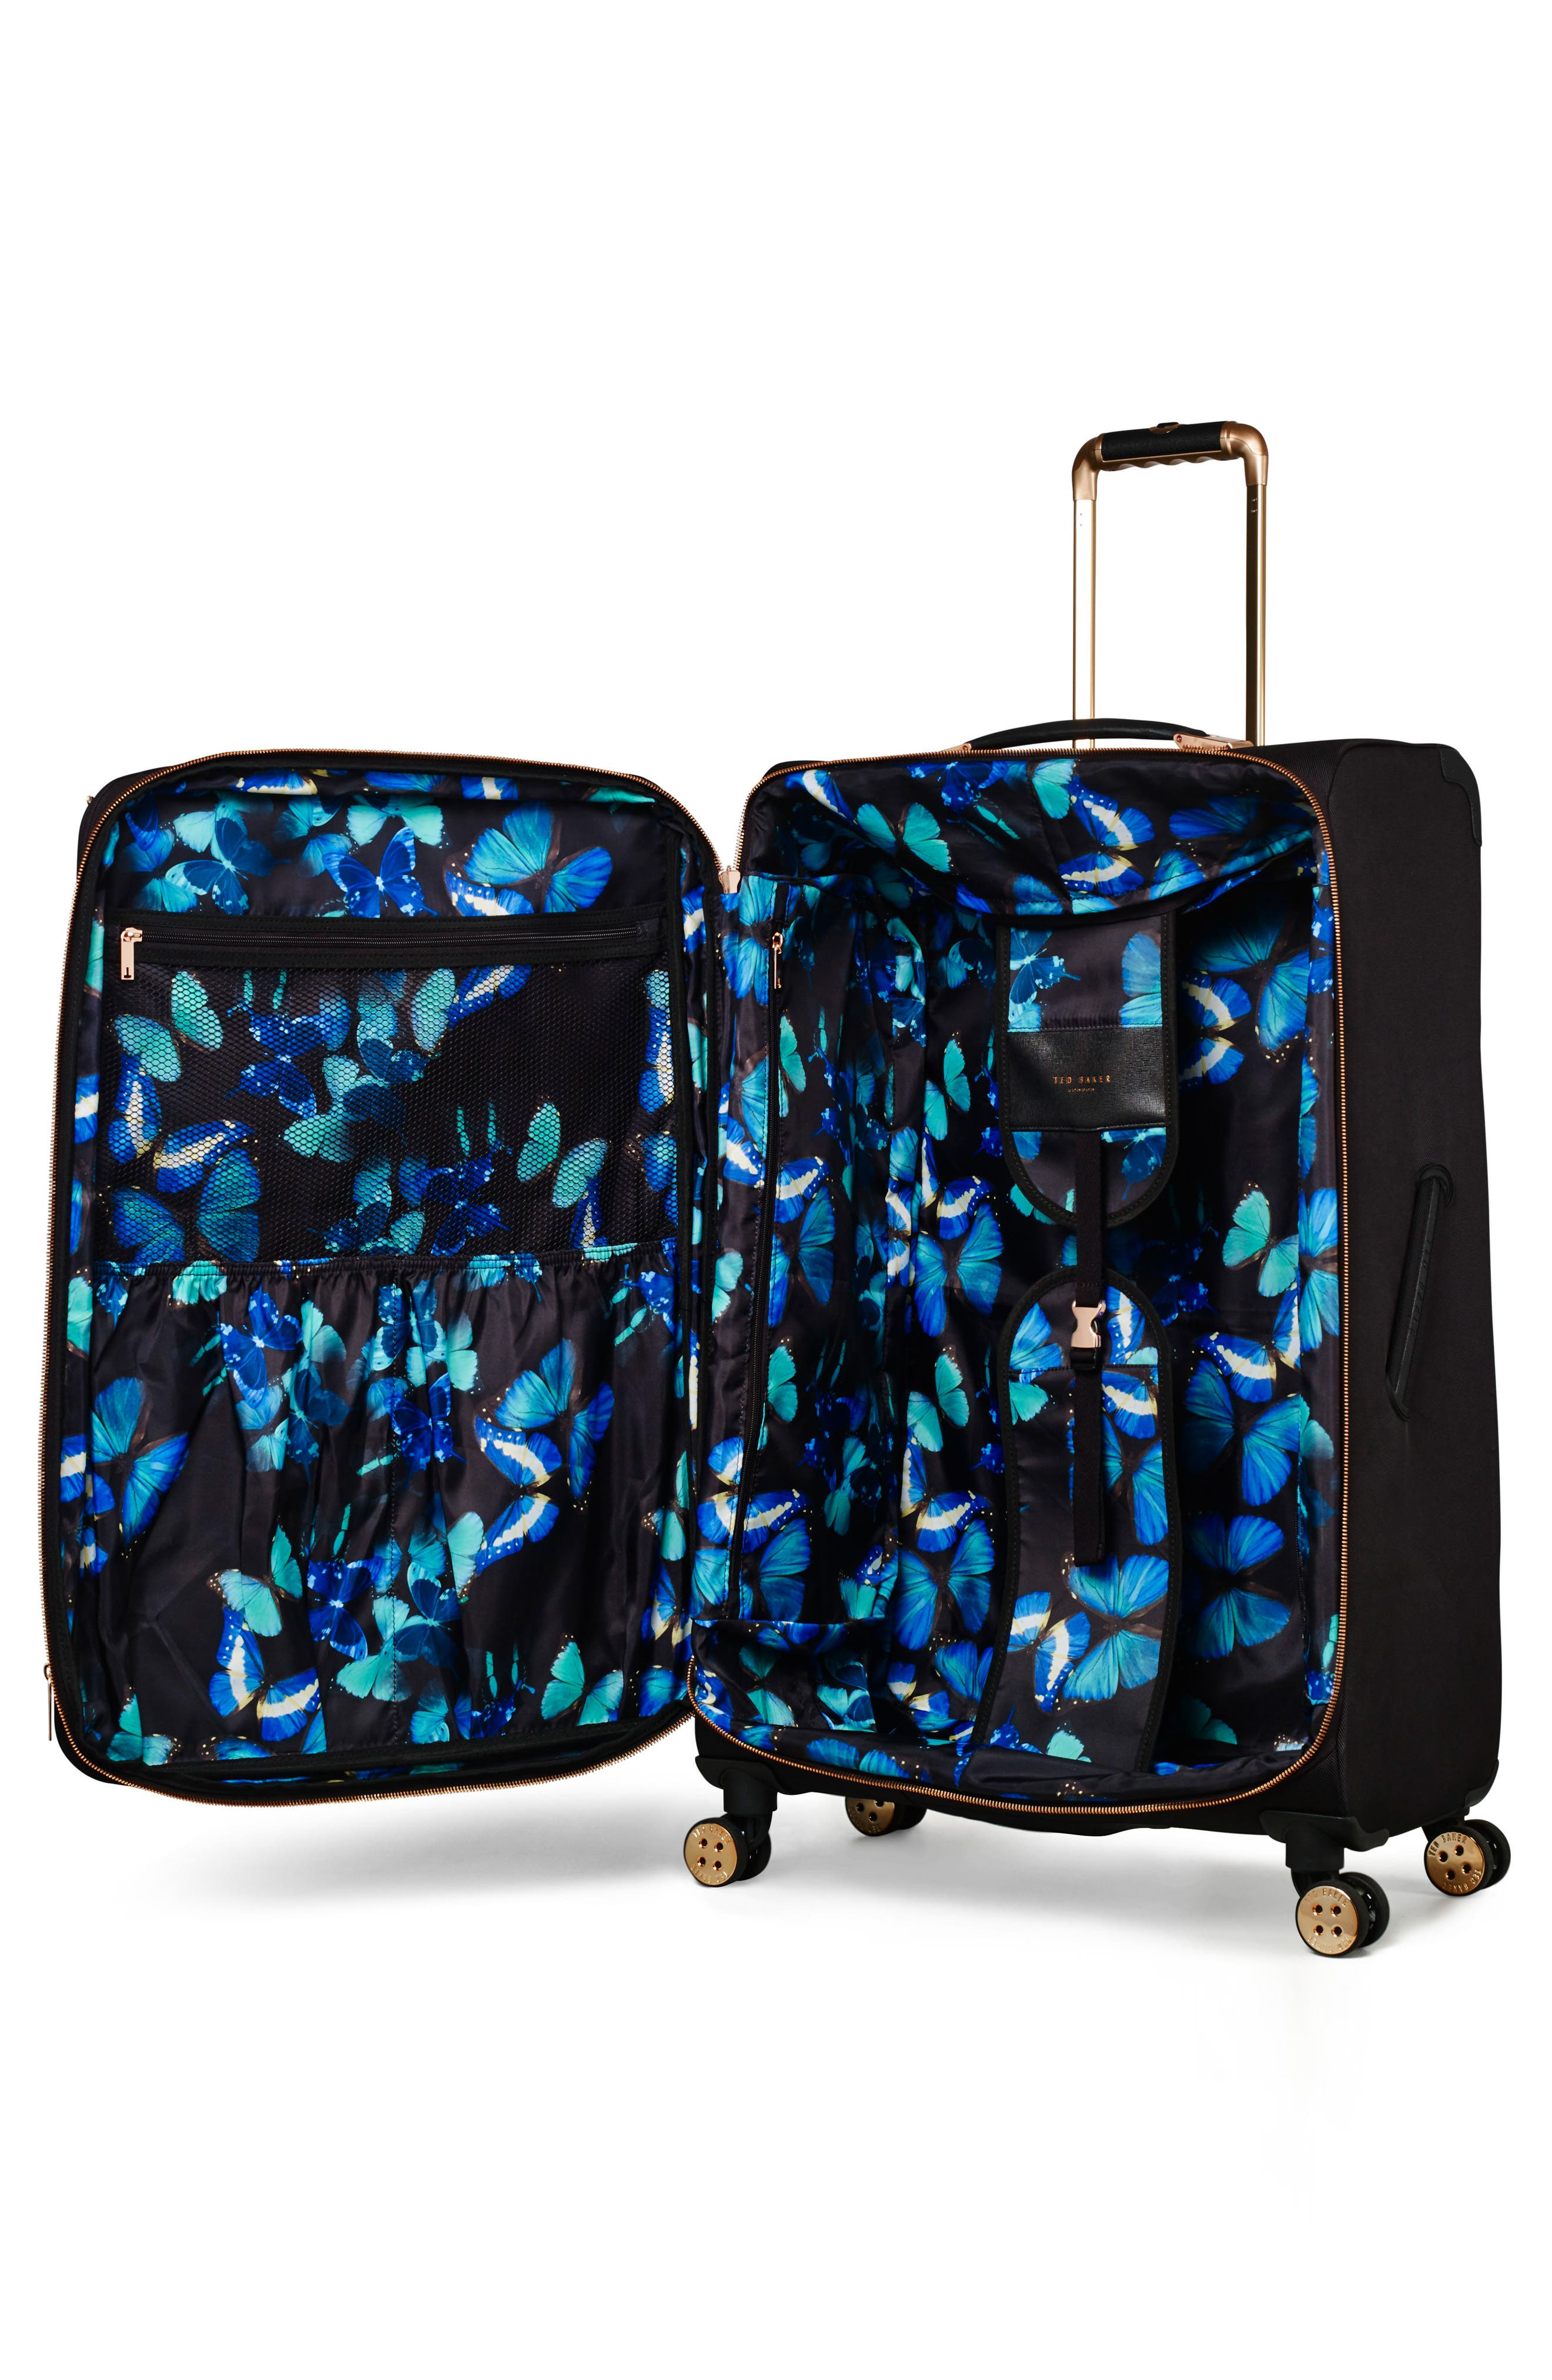 32-Inch Trolley Packing Case,                             Alternate thumbnail 5, color,                             BLACK